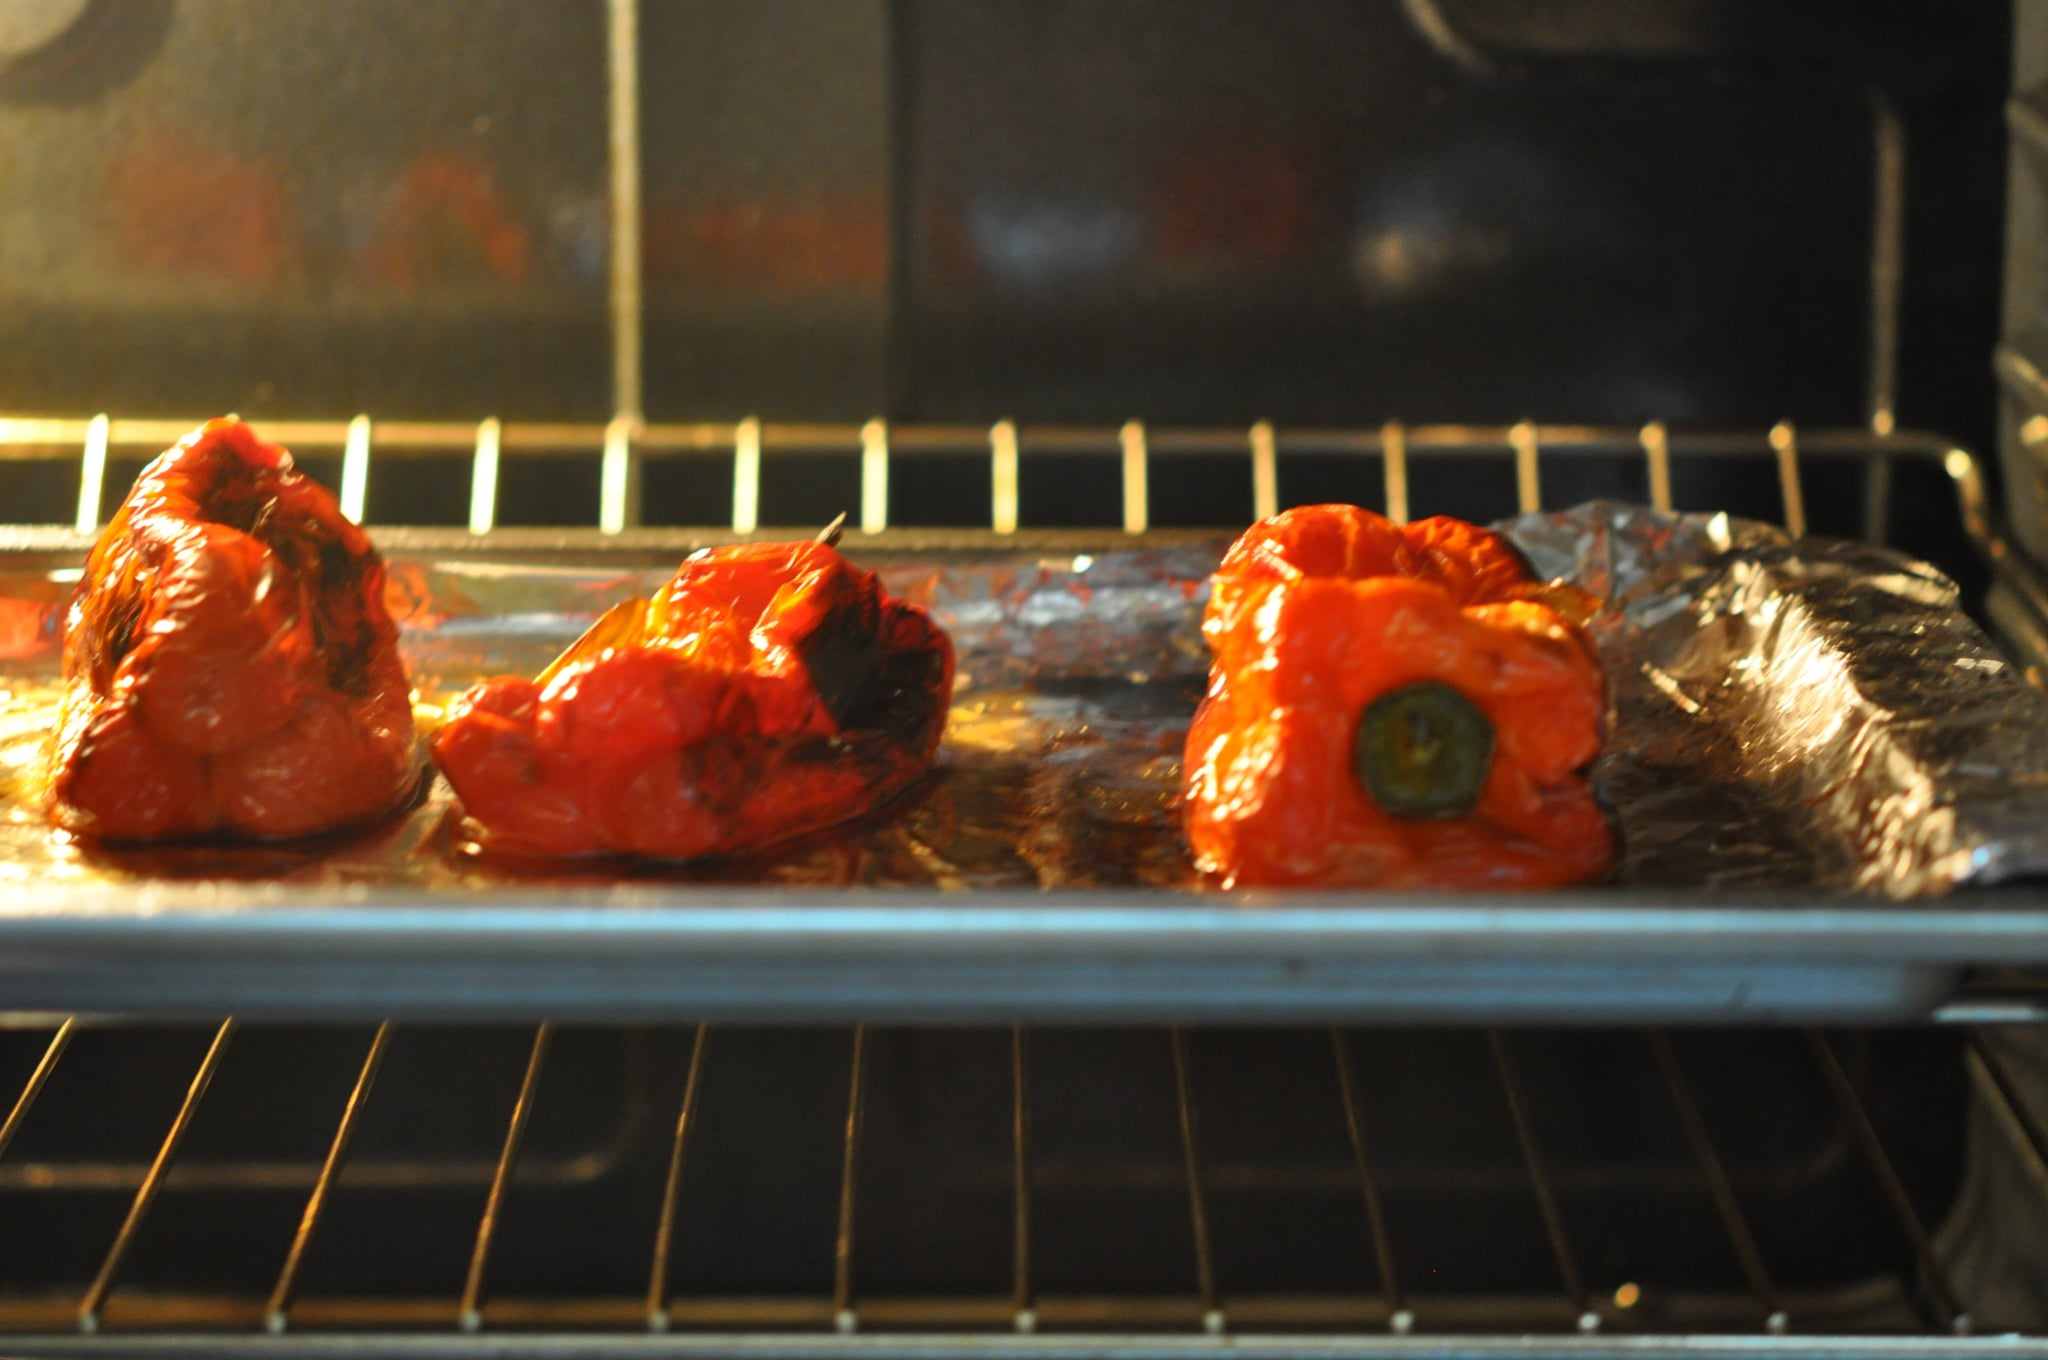 Be sure to watch them closely. Every 10 to 15 minutes, flip the bell peppers so each side of the pepper is charred.